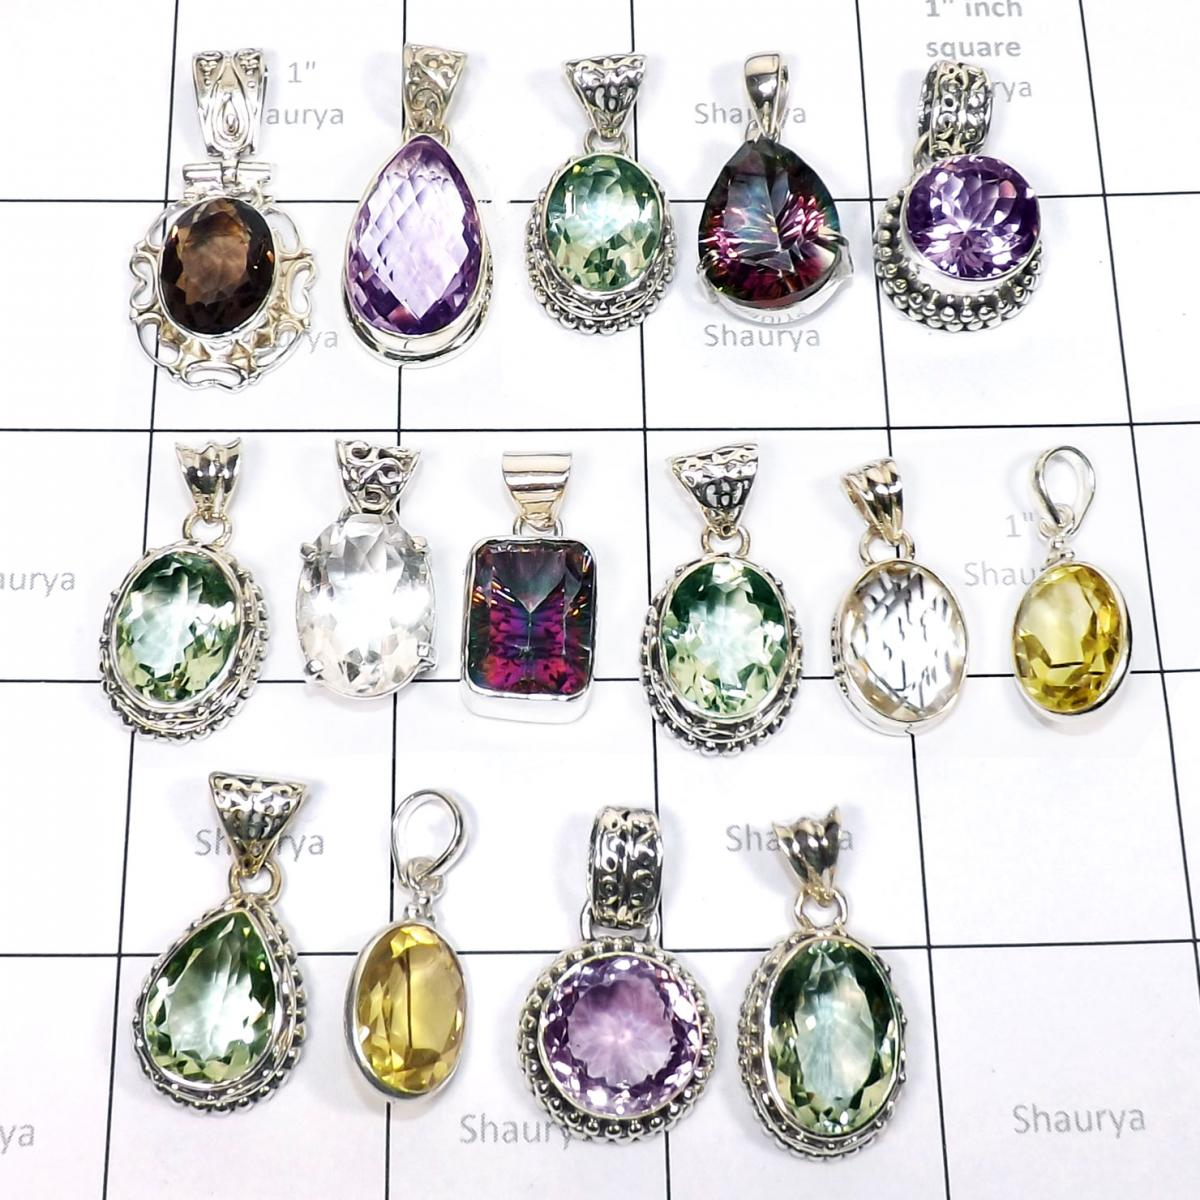 15 Pcs Mix cut stone combo lot-D - WSL997- Sterling silver Wholesale combo lots with Pendants, Earr